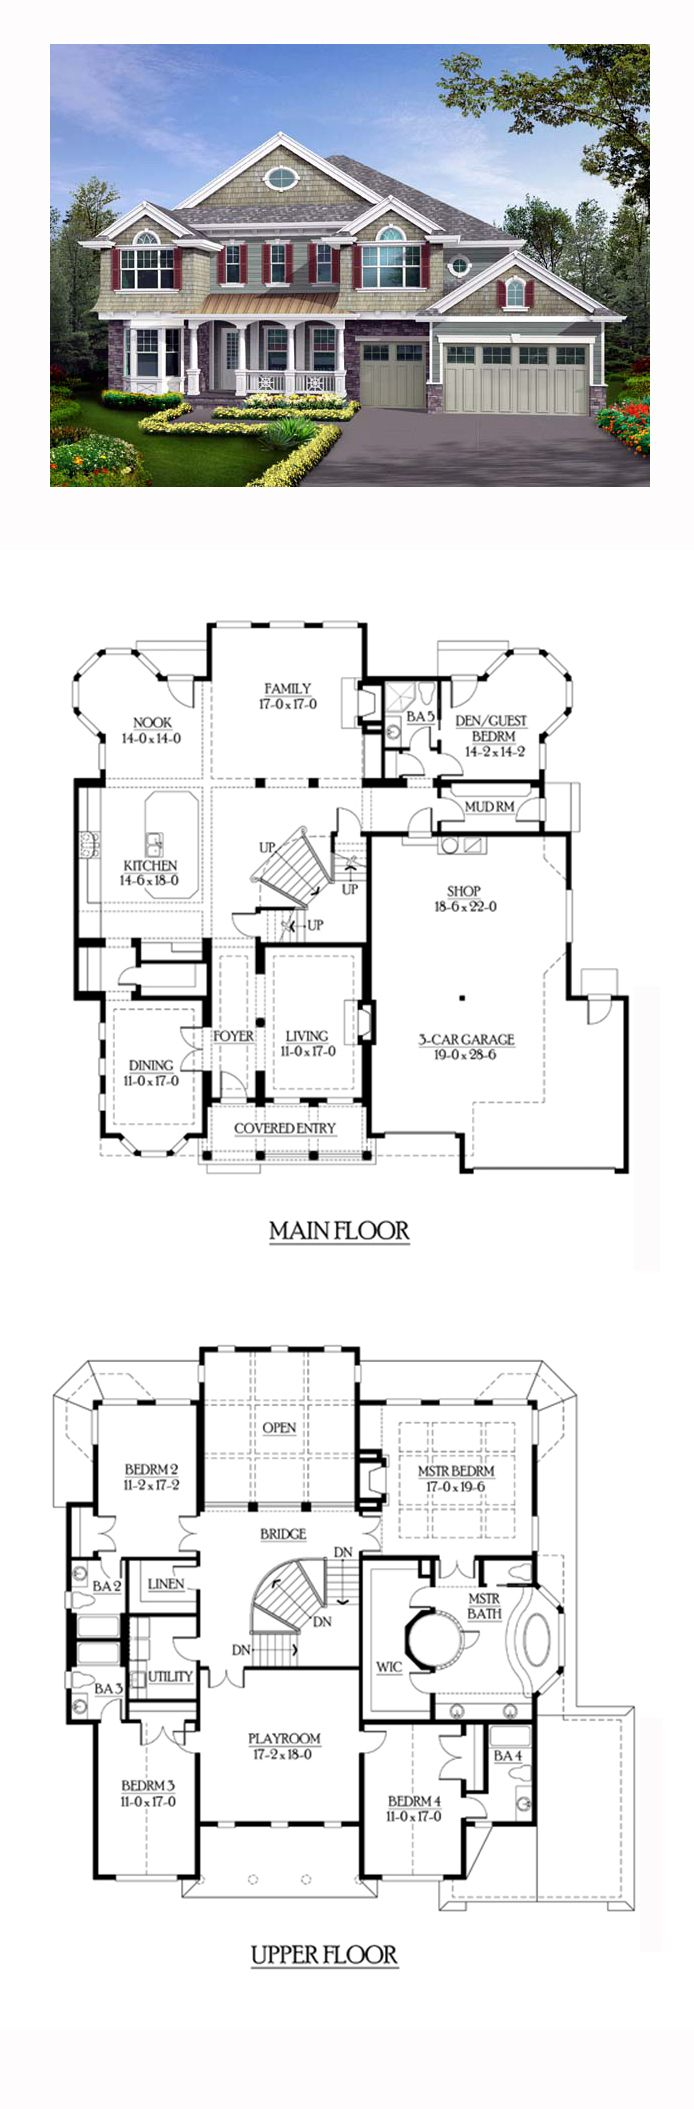 Best Kitchen Gallery: 16 Best Shingle Style House Plans Images On Pinterest Cool House of Cool House Plans on rachelxblog.com